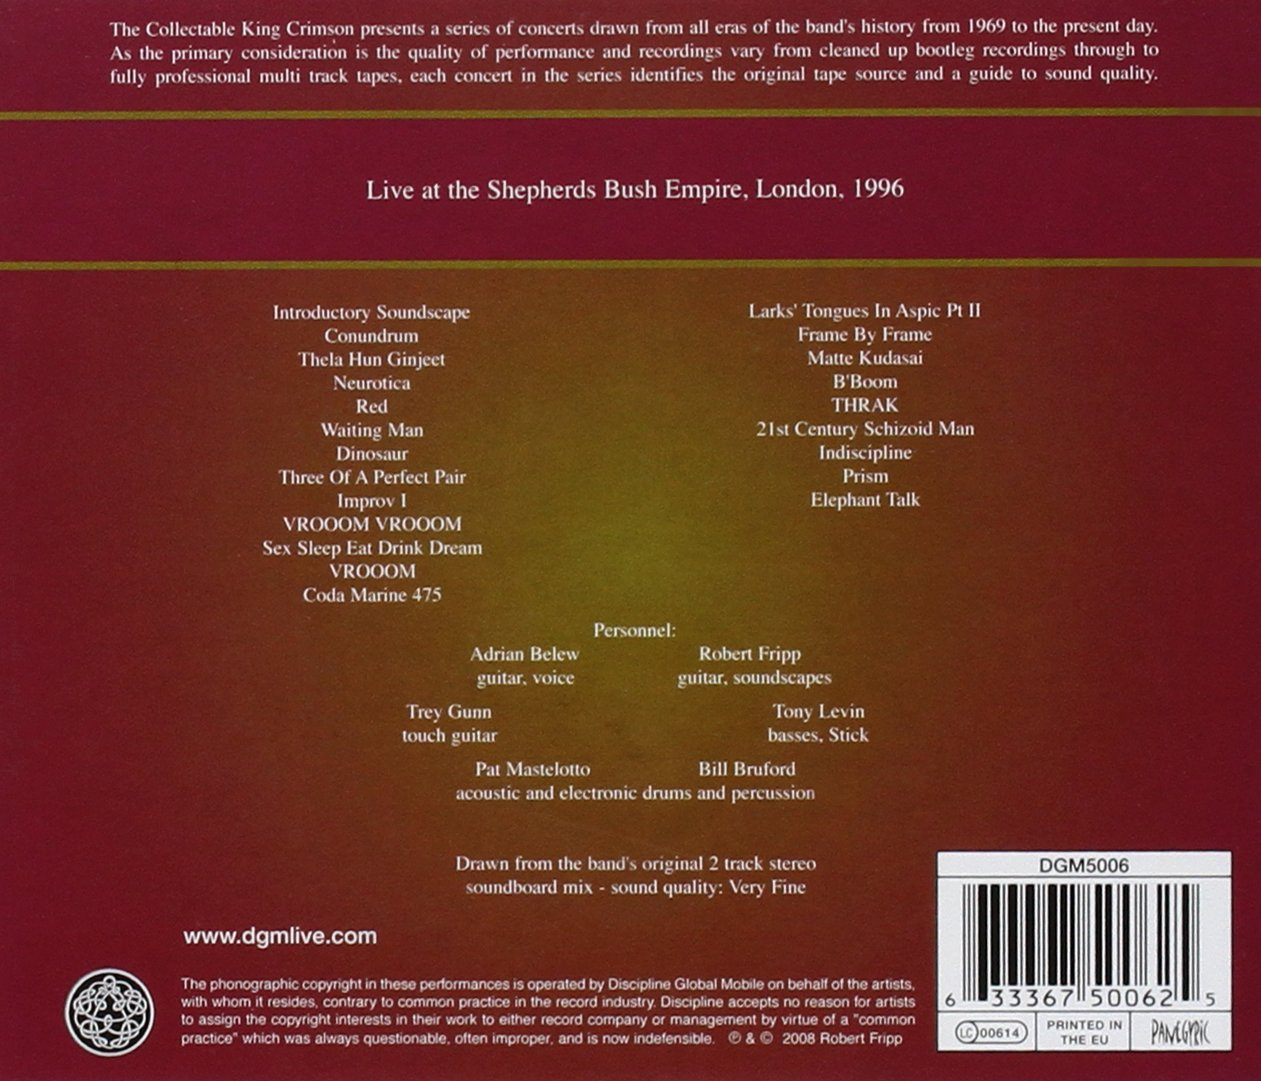 The Collectable King Crimson, Vol. 3: Live at the Shepherd's Bush Empire, London, 1996 by CD